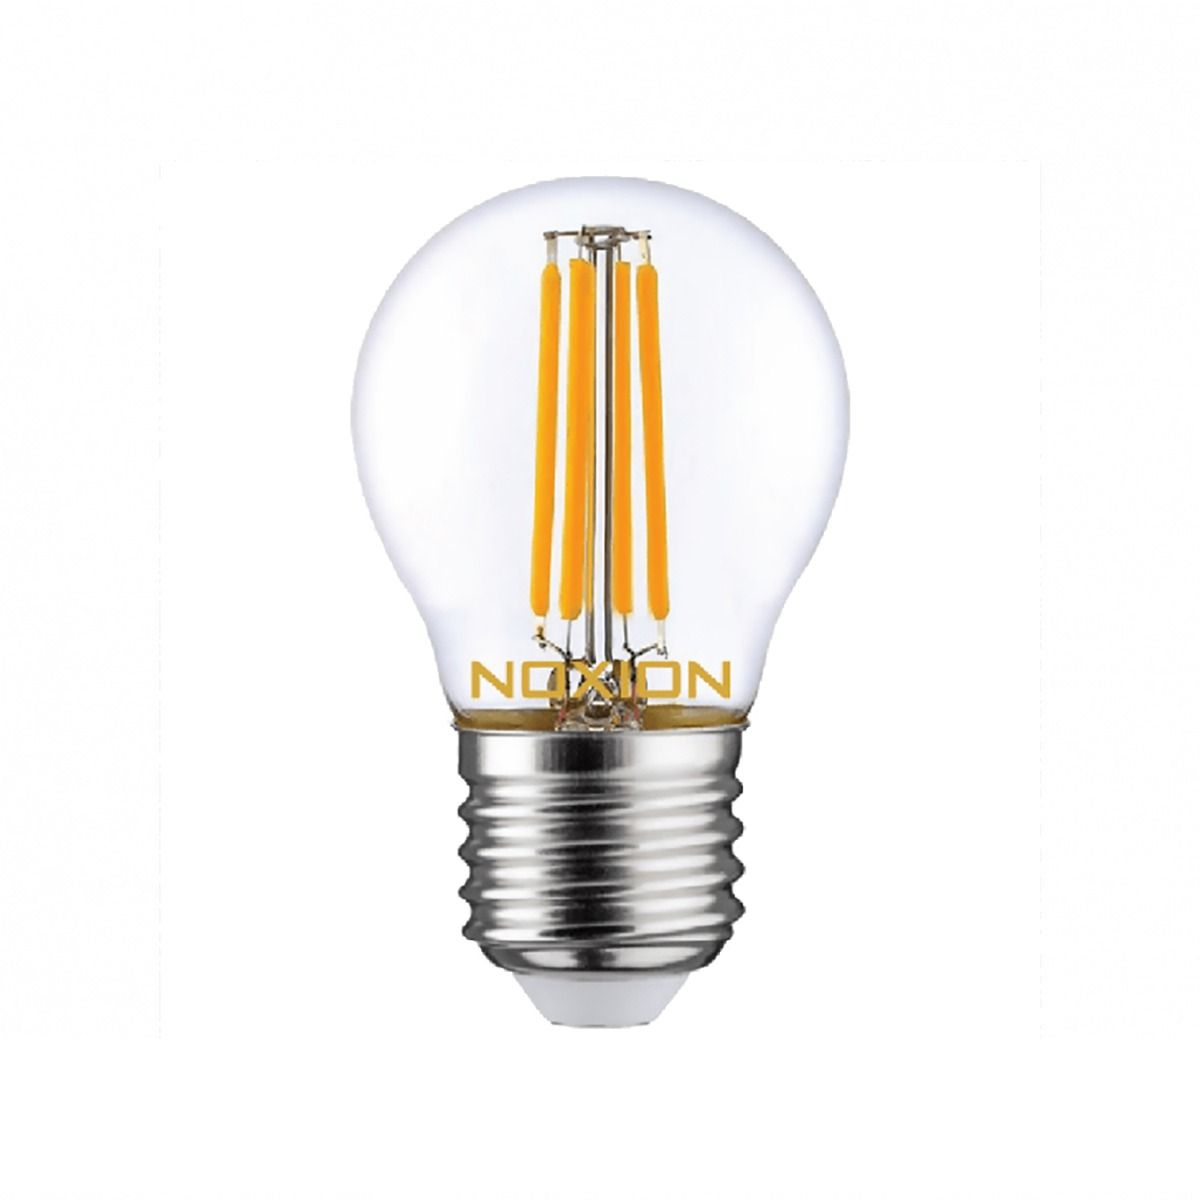 Noxion Lucent Filament LED Lustre 4.5W 827 P45 E27 Clear | Extra Warm White - Replaces 40W